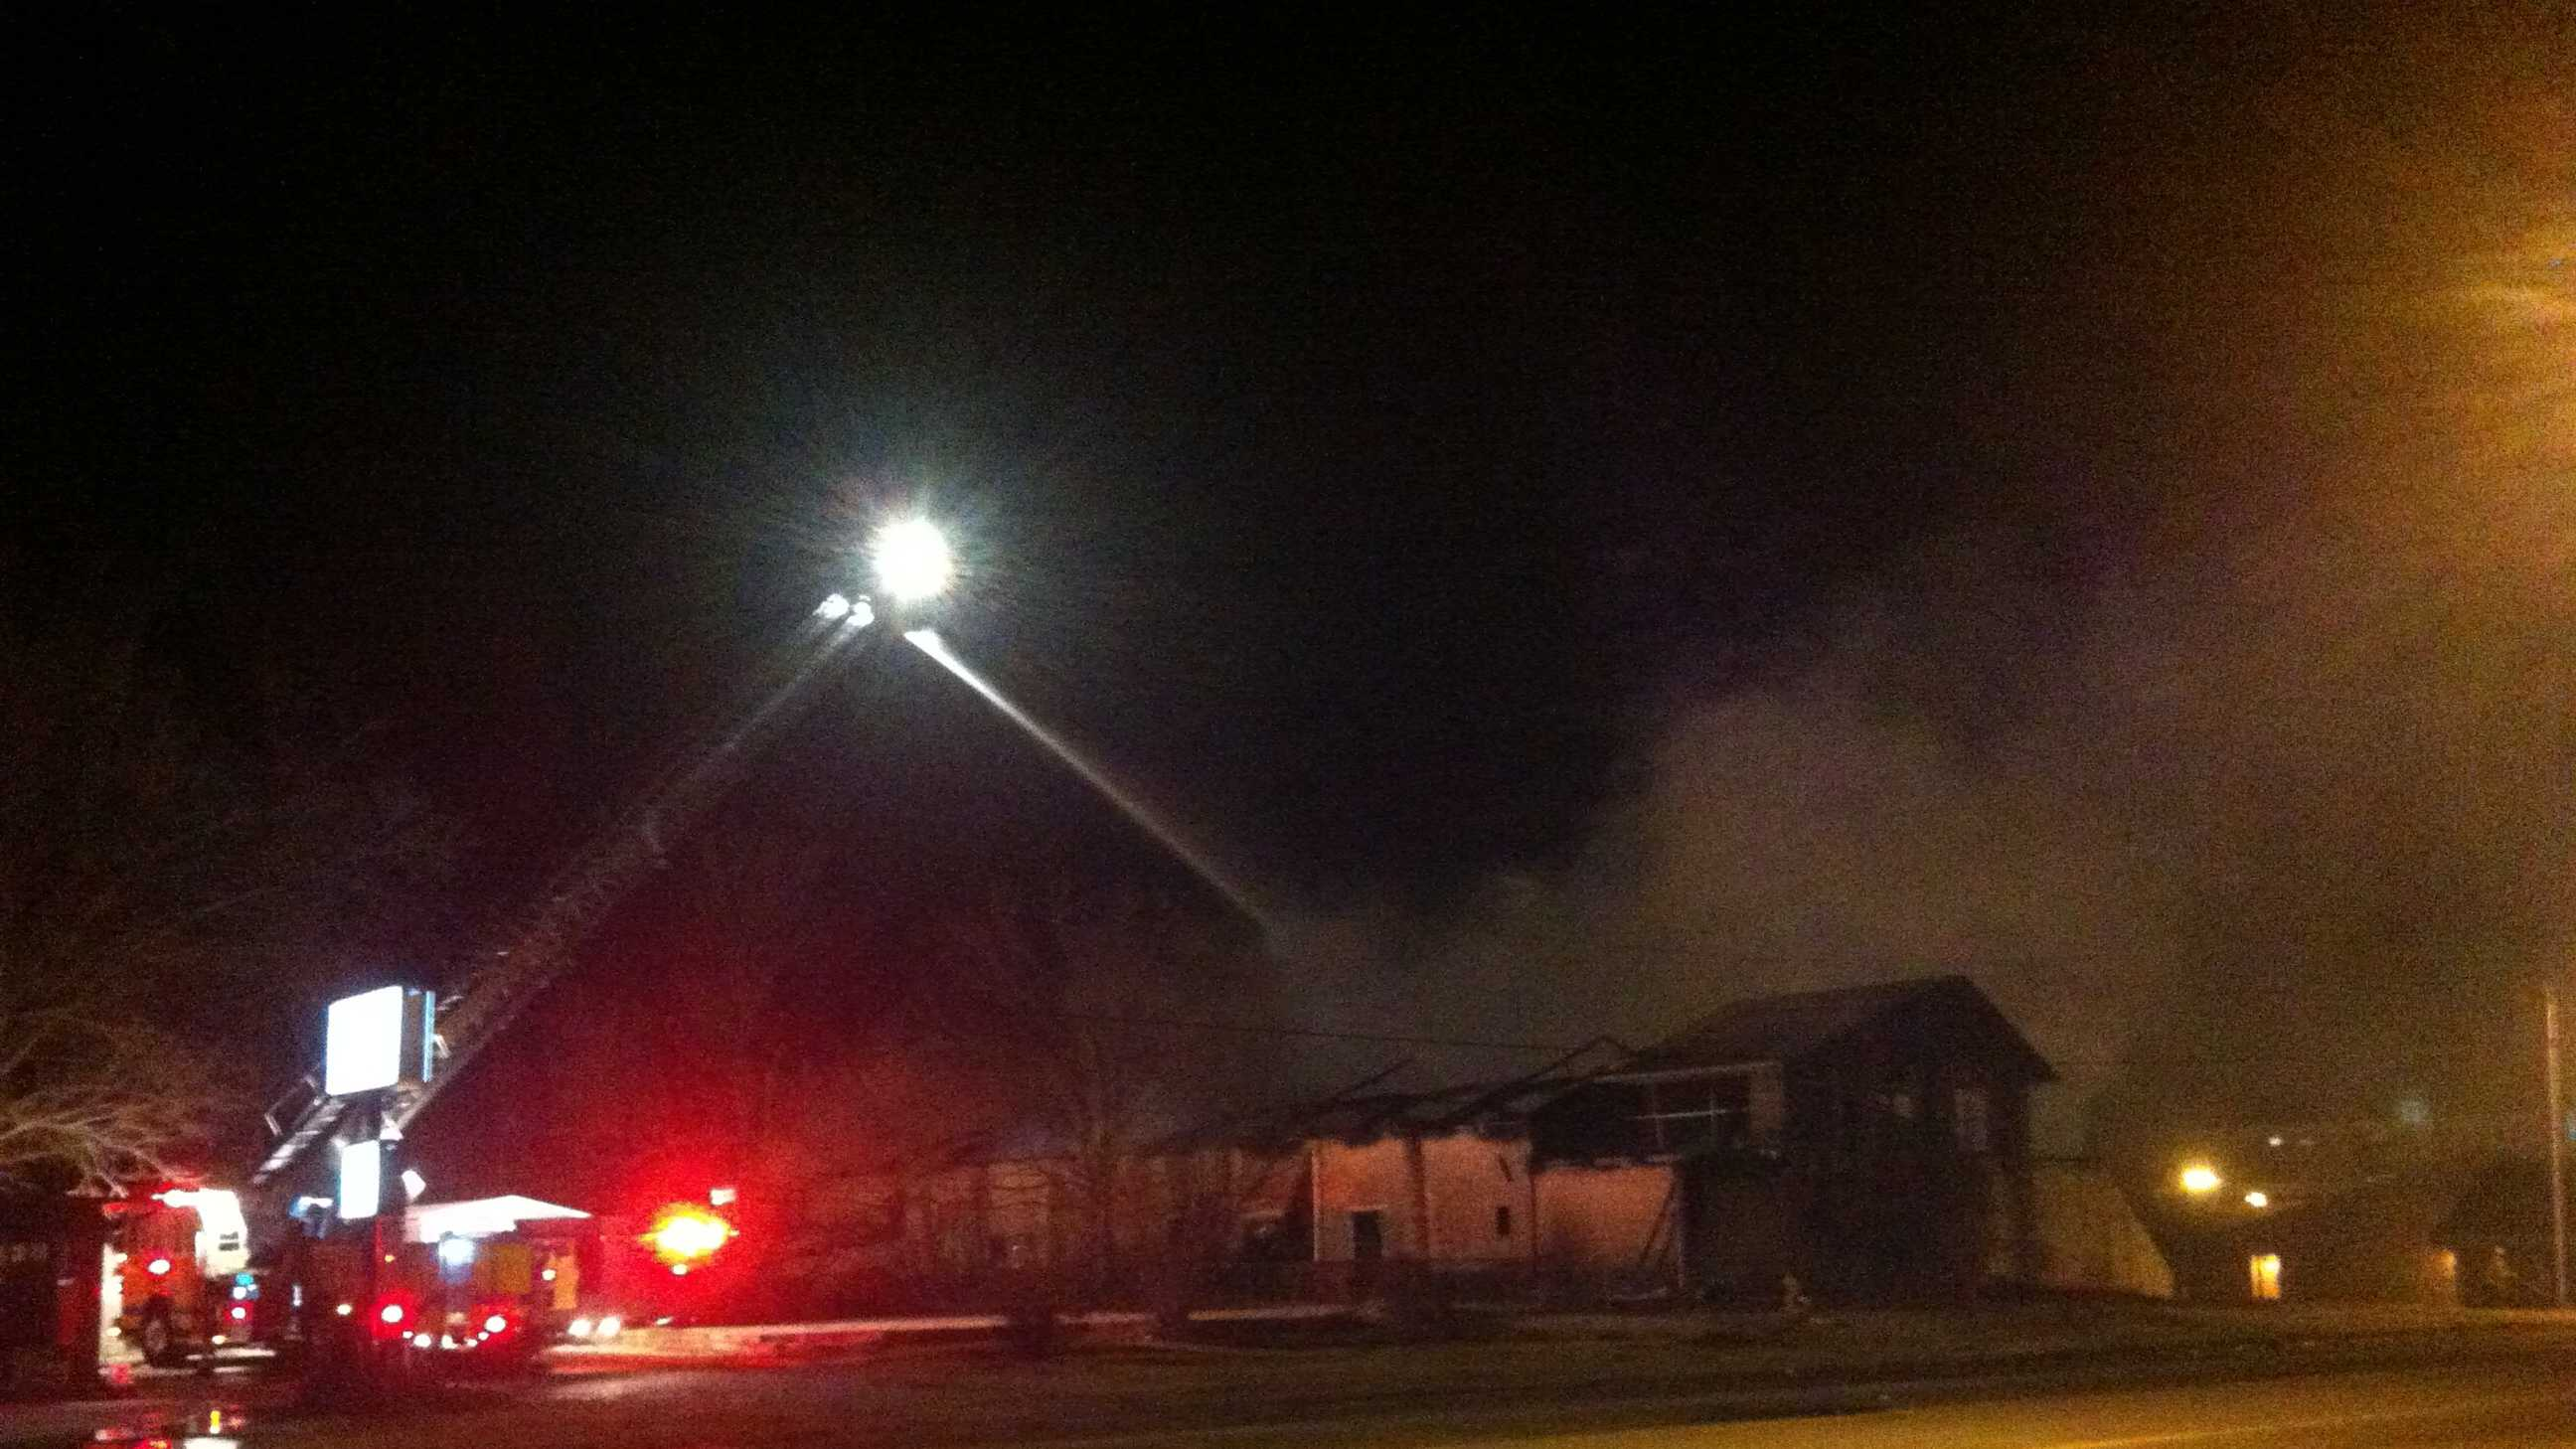 Firefighters from Springdale and Fayetteville battled flames overnight into Monday morning at a building fire.